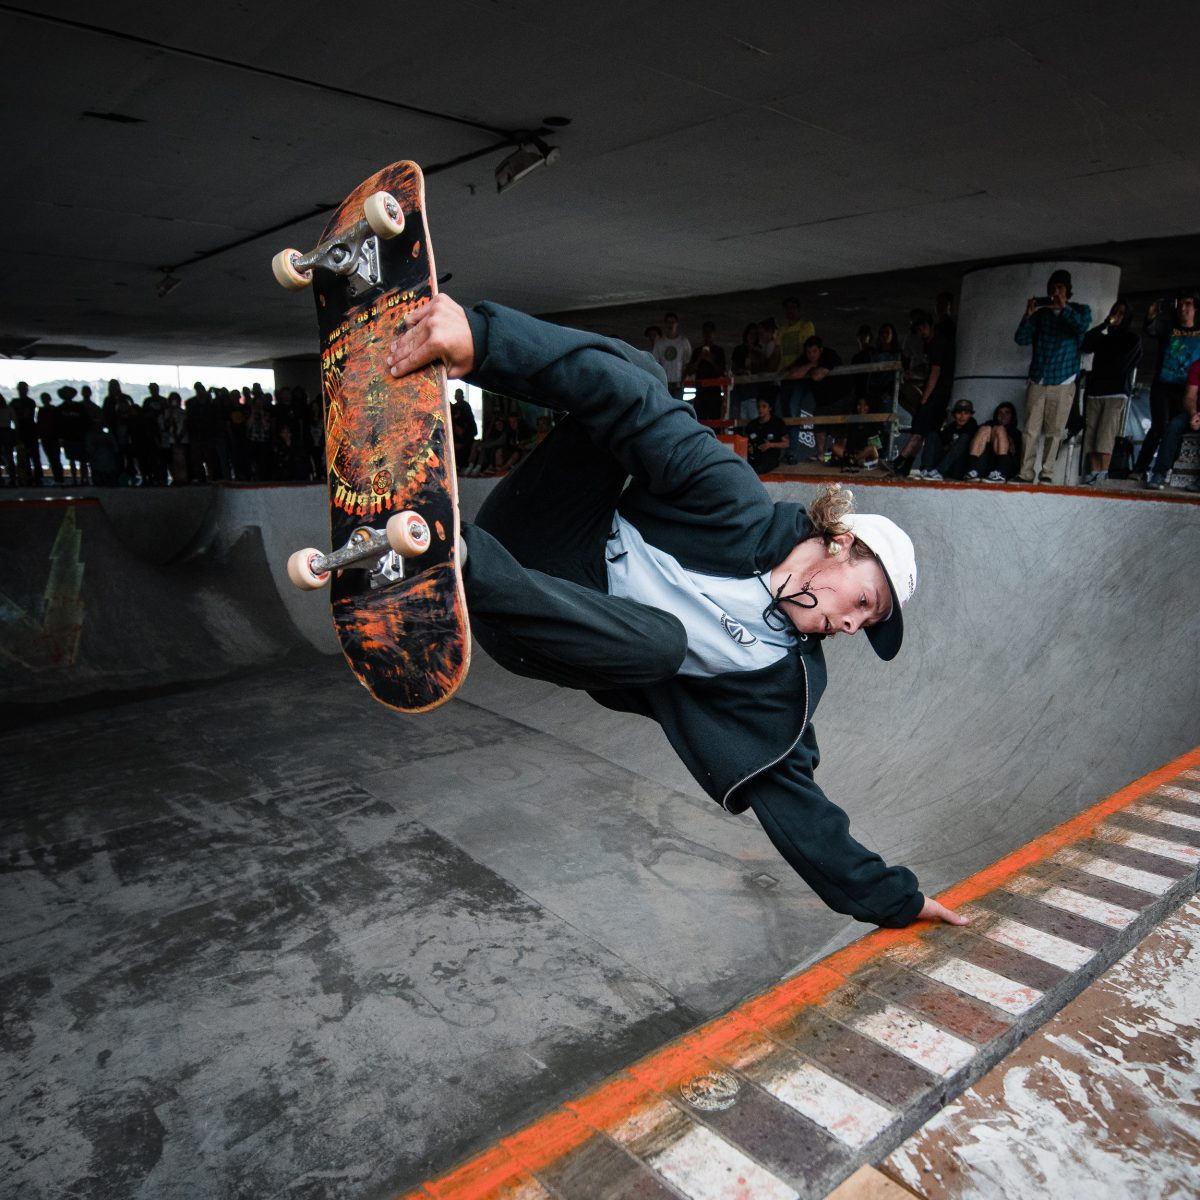 Greg DeHart - Lords of Seatown / Seattle - Zach Proffitt Photo